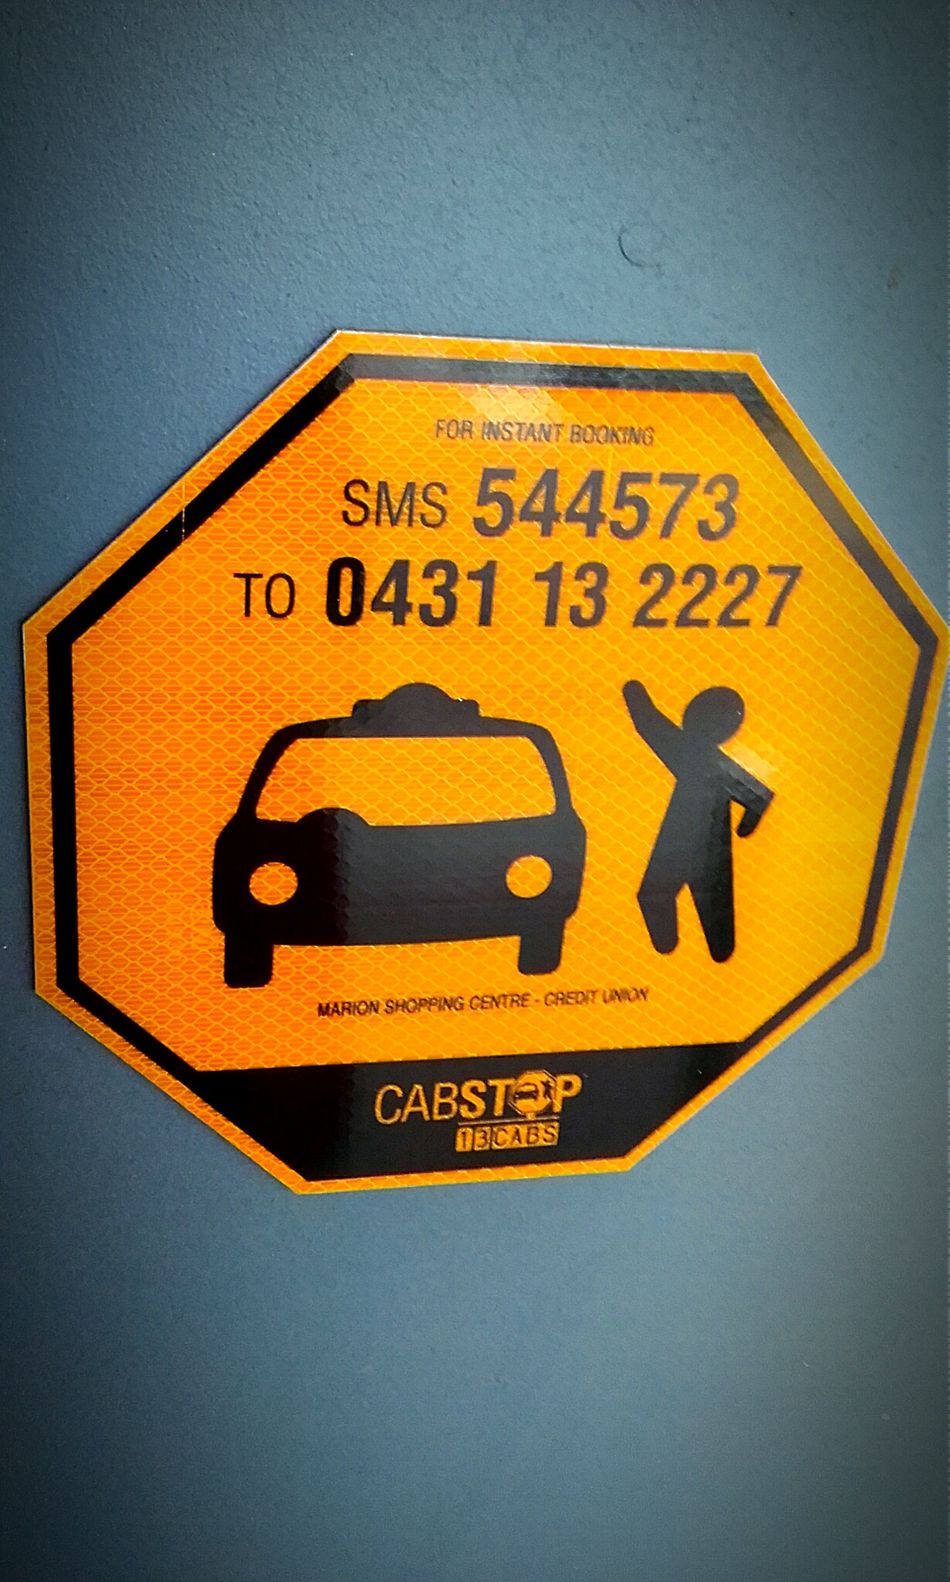 Cabstop Notice Sign Notices Signporn Signs SignSignEverywhereASign Signstalkers Sign, Sign, Everywhere A Sign Signage SIGNS. Taxi Rank SignsSignsAndMoreSigns Signboard Signs And Symbols Signs Signs Everywhere Signs Taxi Taxicabs Signs_collection Black & Orange Black And Orange Stickers On Poles Stickersonposts&poles PoleStickers Stickers On Posts & Poles